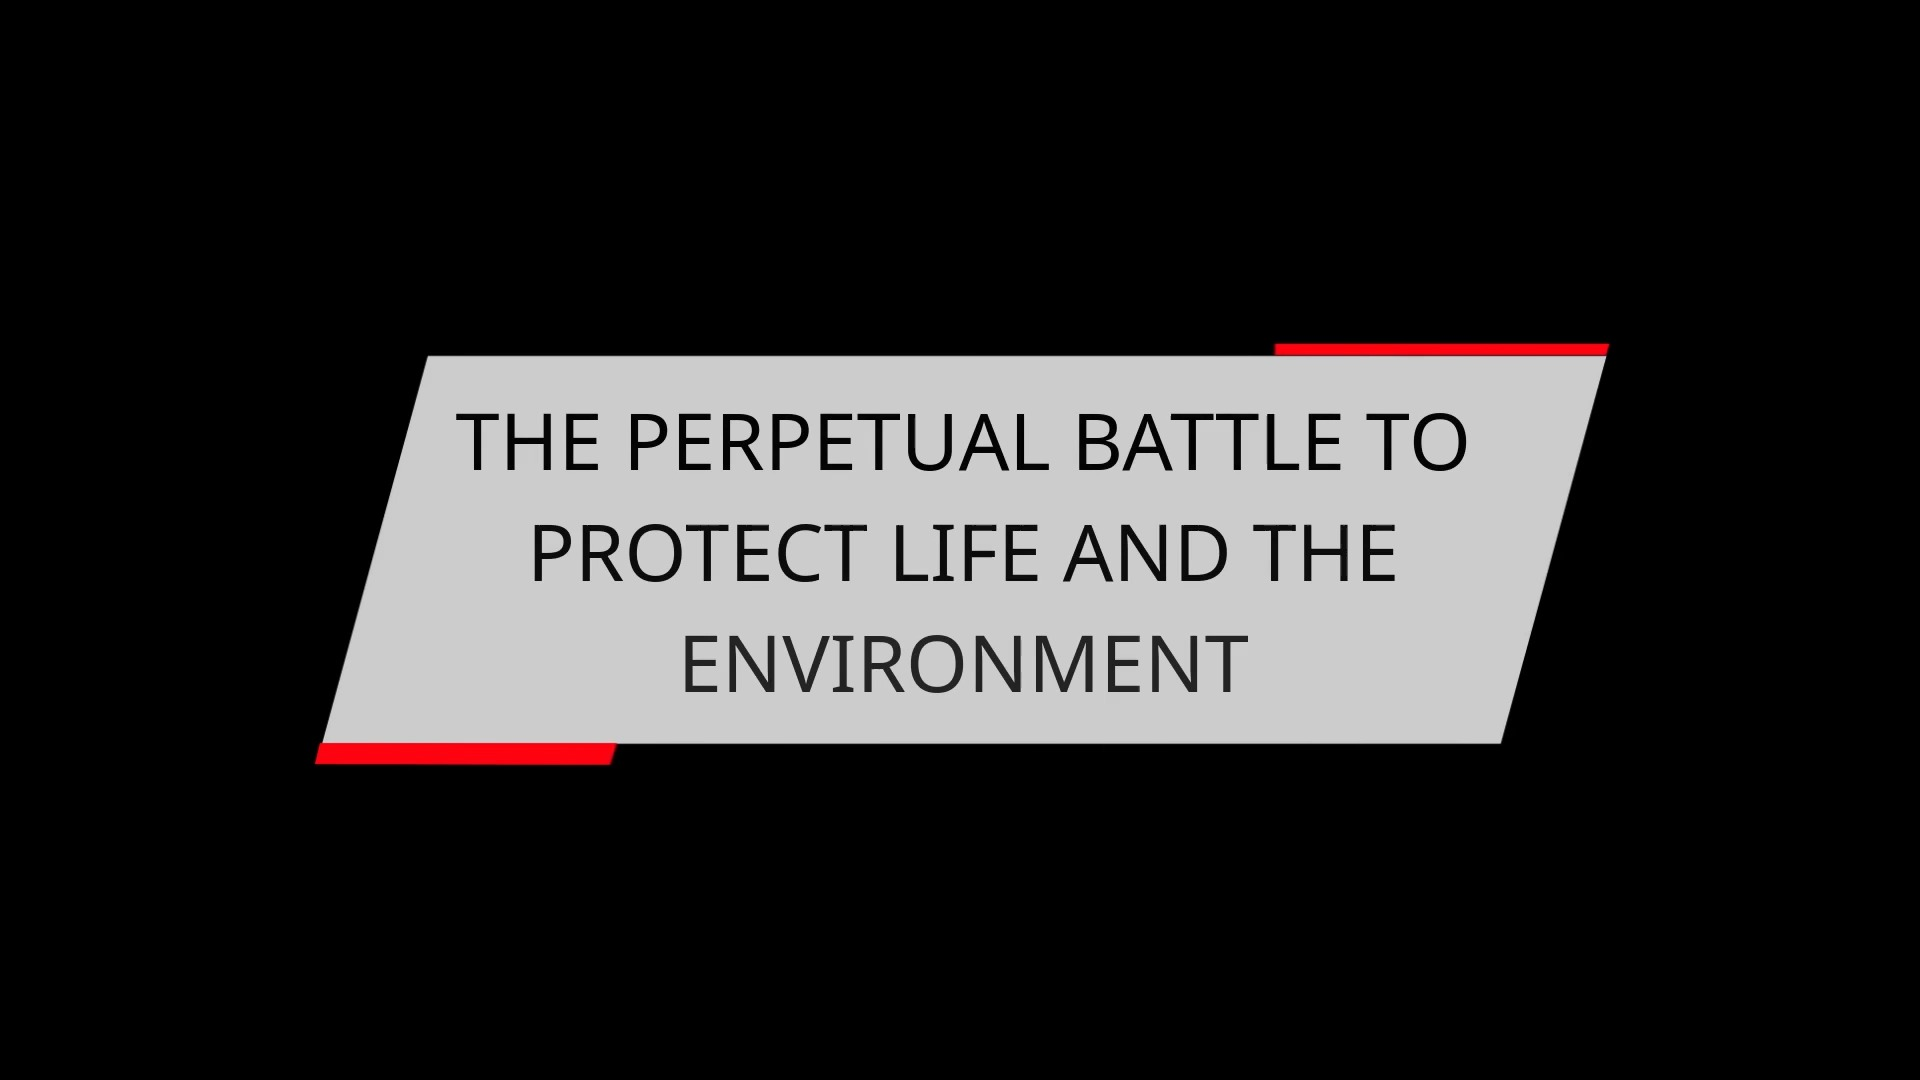 THE PERPETUAL BATTLE TO PROTECT LIFE AND THE ENVIRONMENT